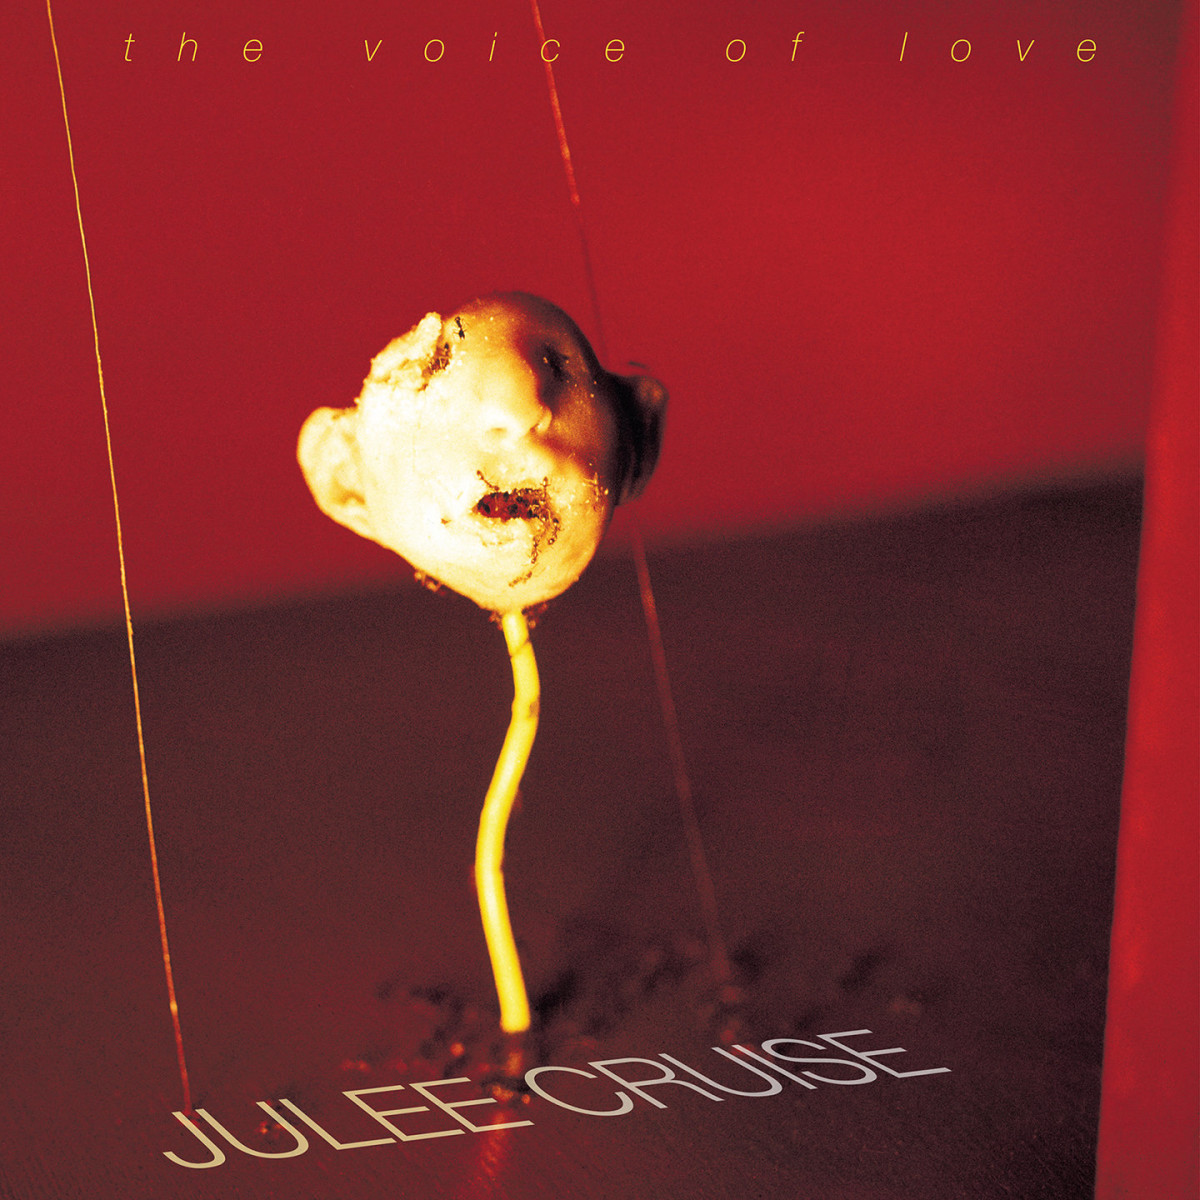 Julee Cruise The Voice of Love review